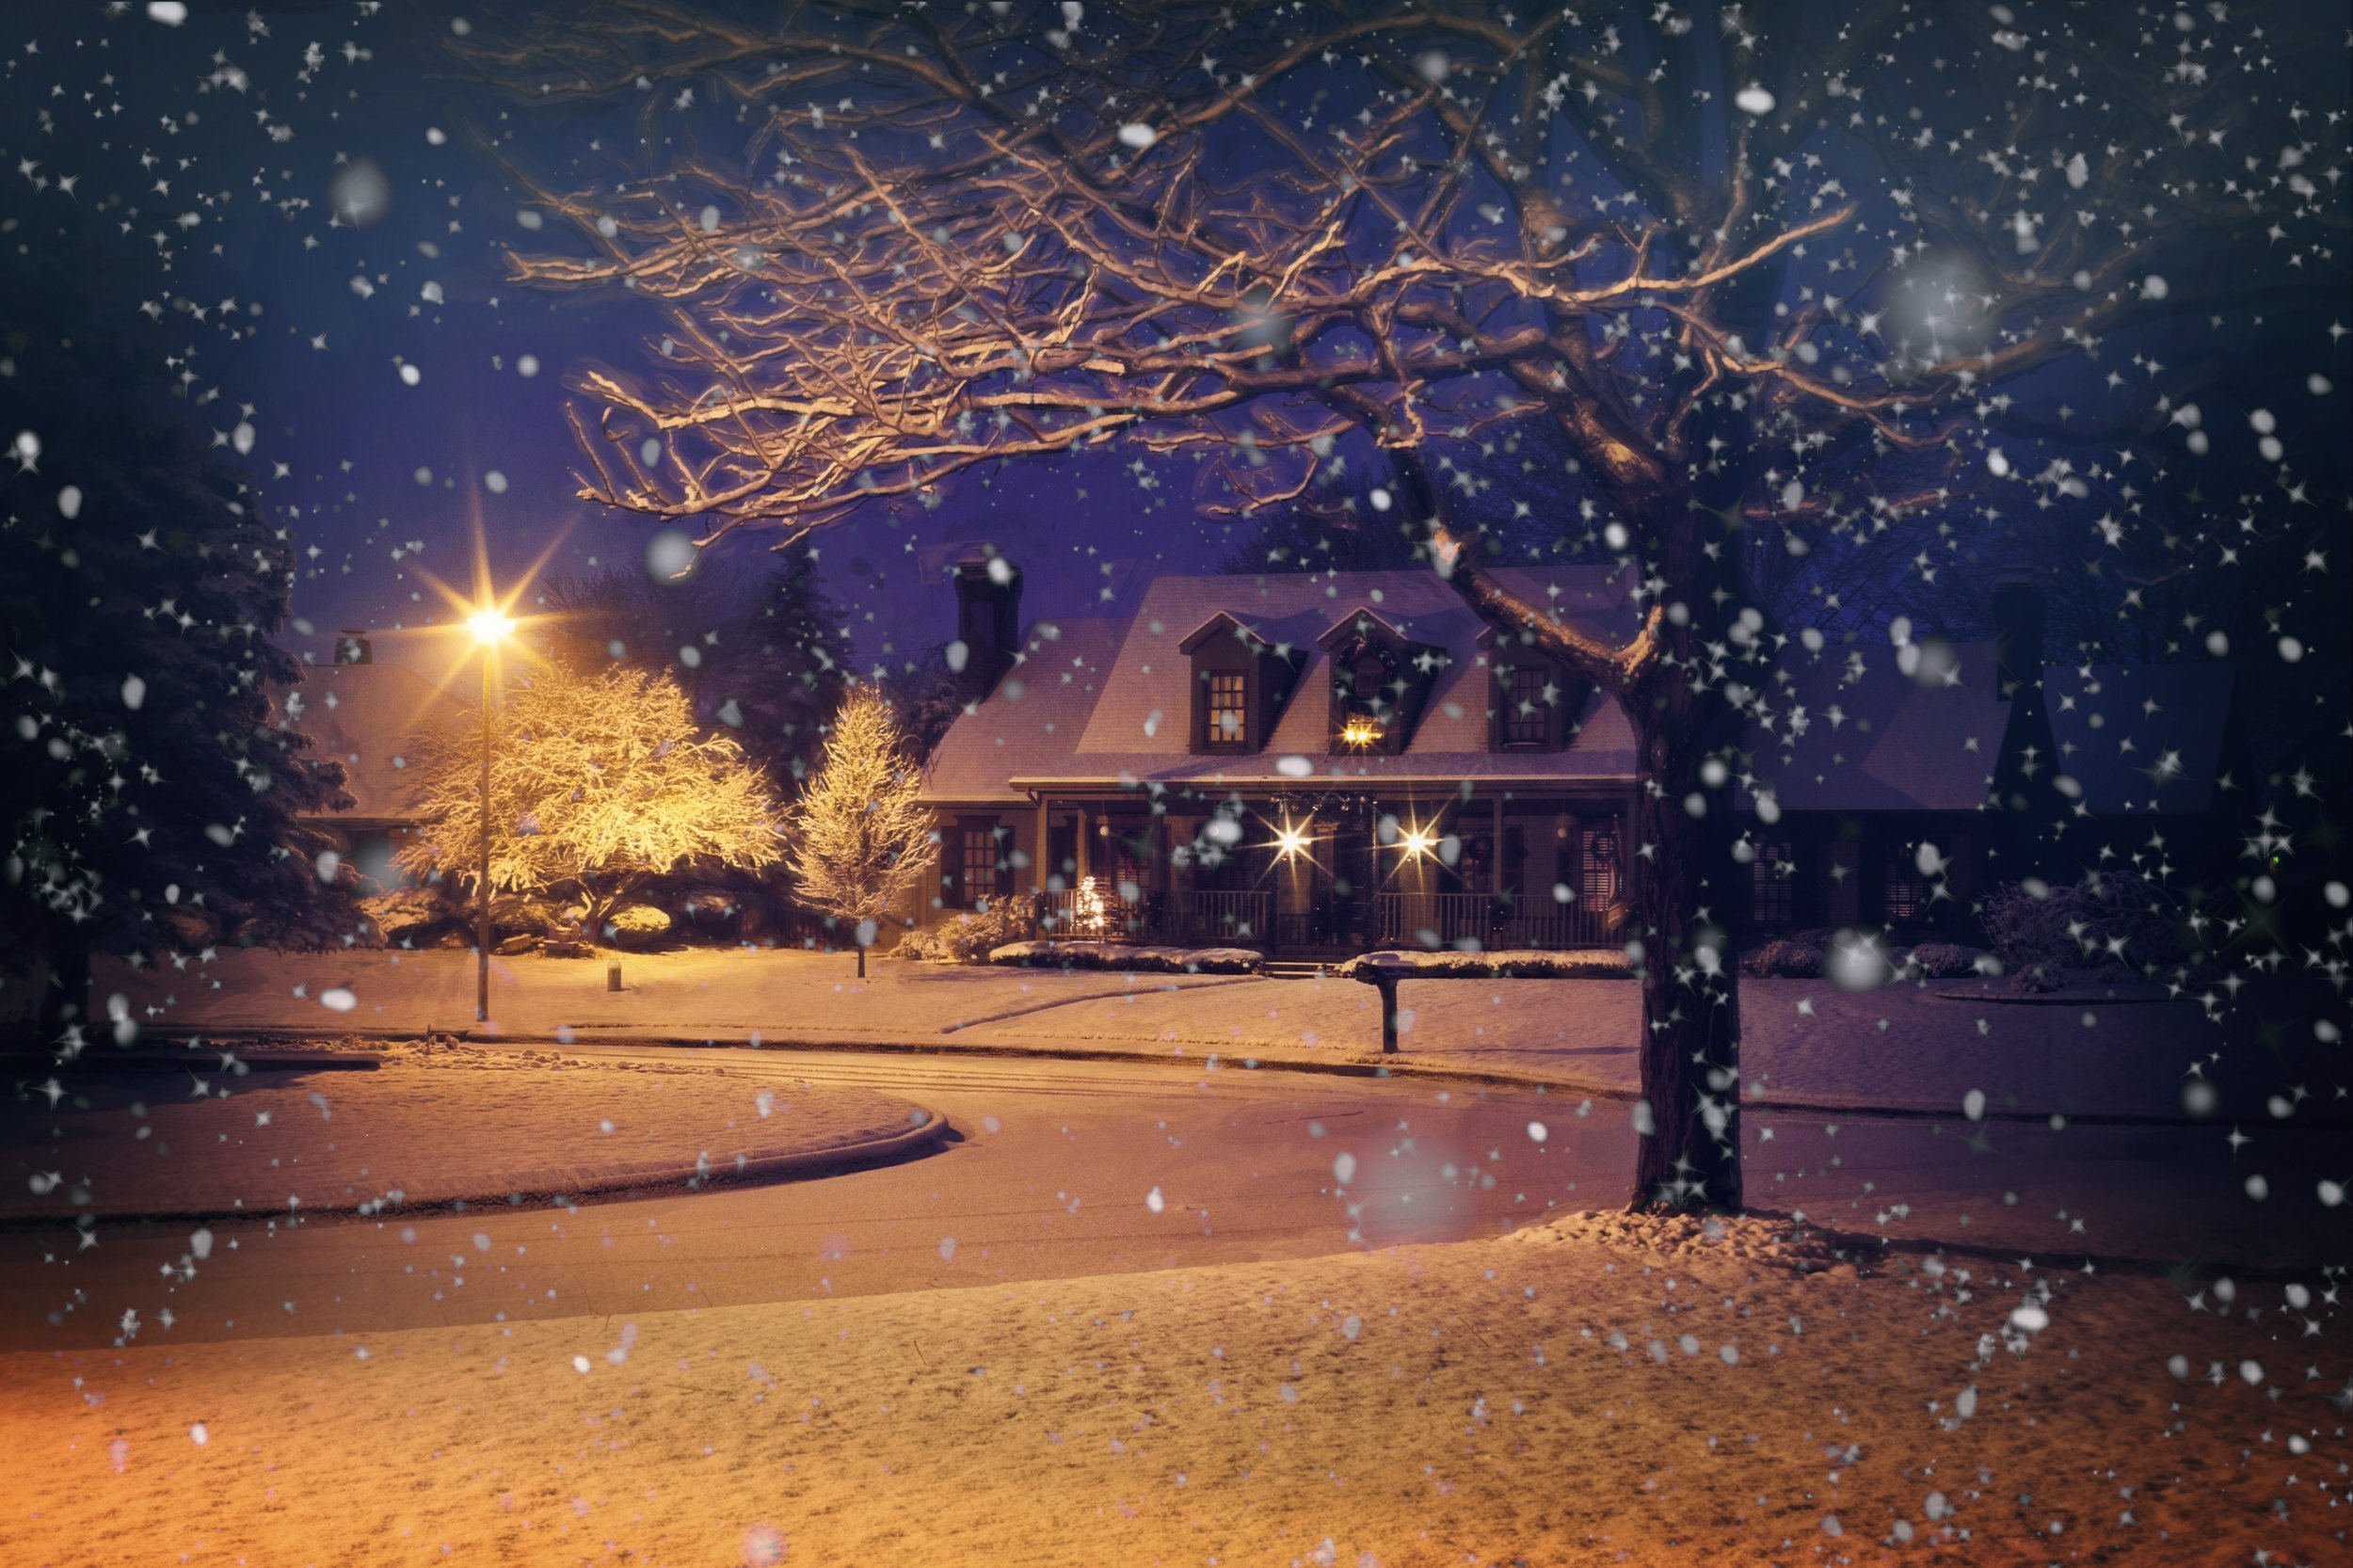 midnight-snow-1915907.jpg